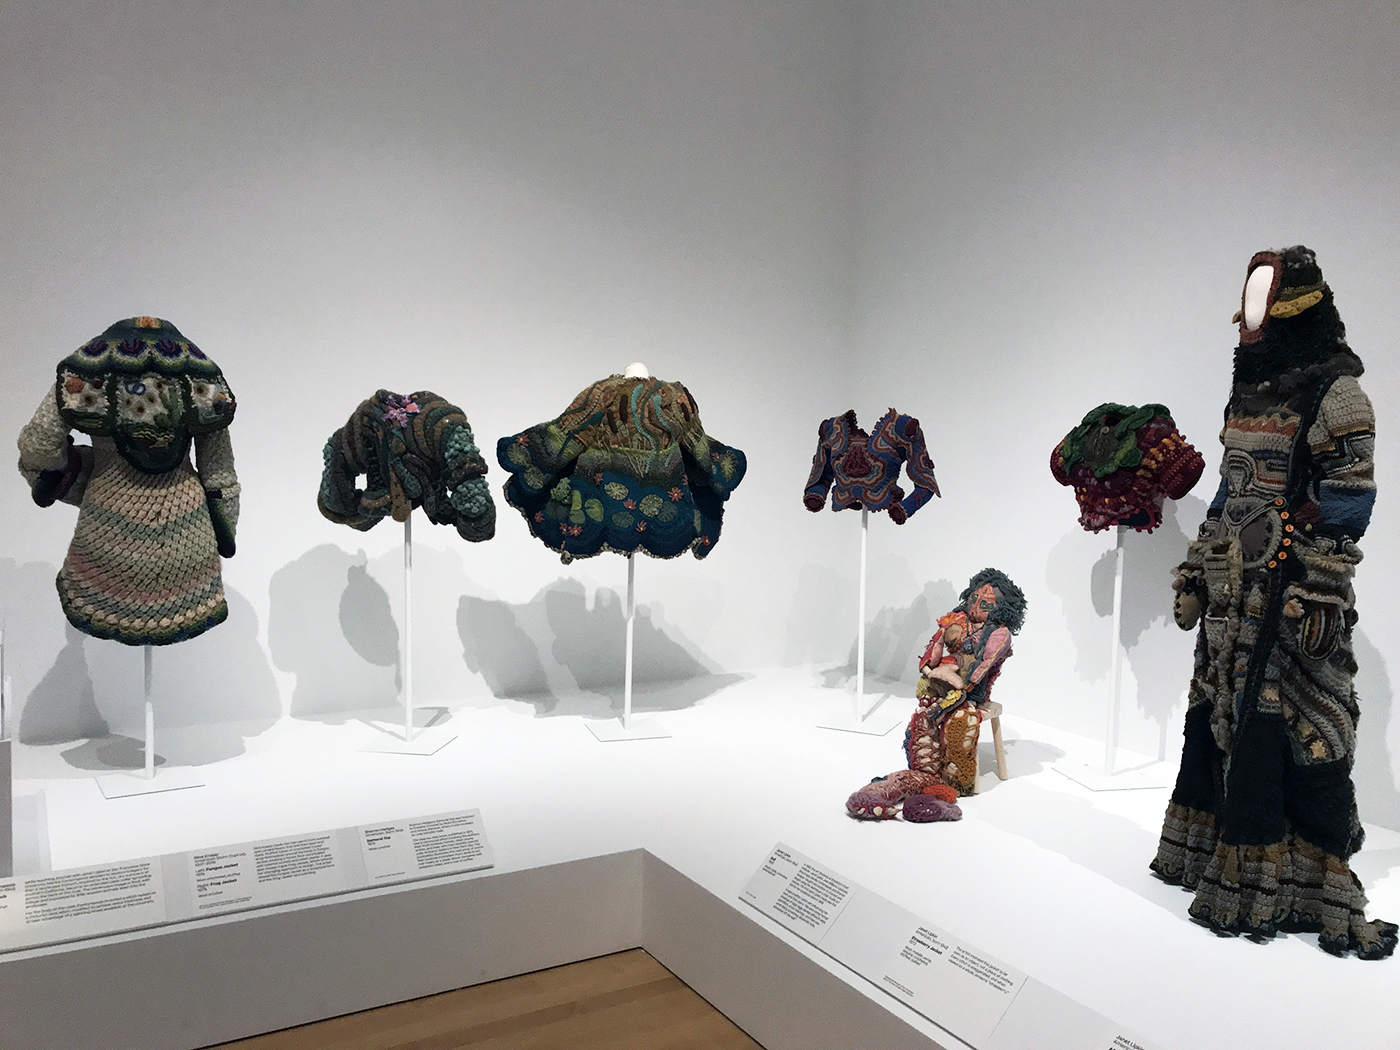 Installation view of Off the Wall: American Art to Wear at the Philadelphia Museum of Art, with work by Marika Contompasis, Dina Knapp, Sharron Hedges, and Janet Lipkin (courtesy Janet Lipkin)